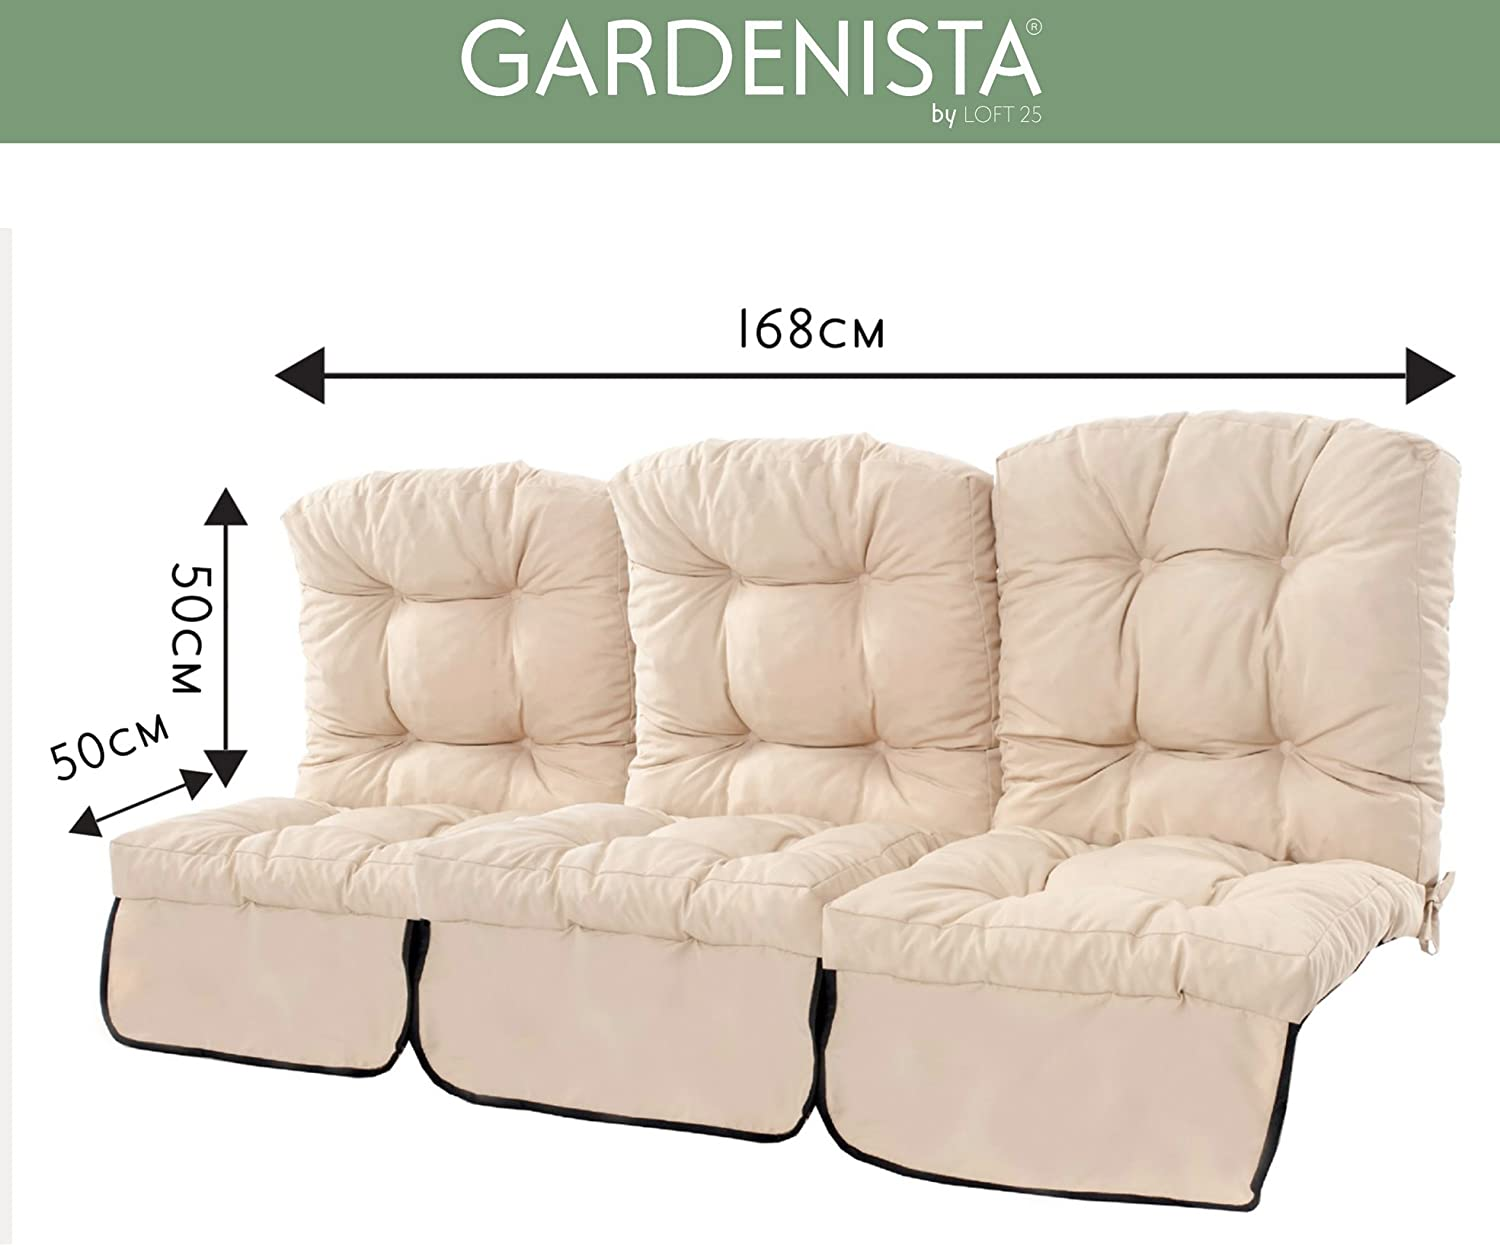 Green Made in the UK Tufted Cushions Collection Gardenista Outdoor Garden 3 Seater Swing Cushion in Water Resistant Fabric with Ties